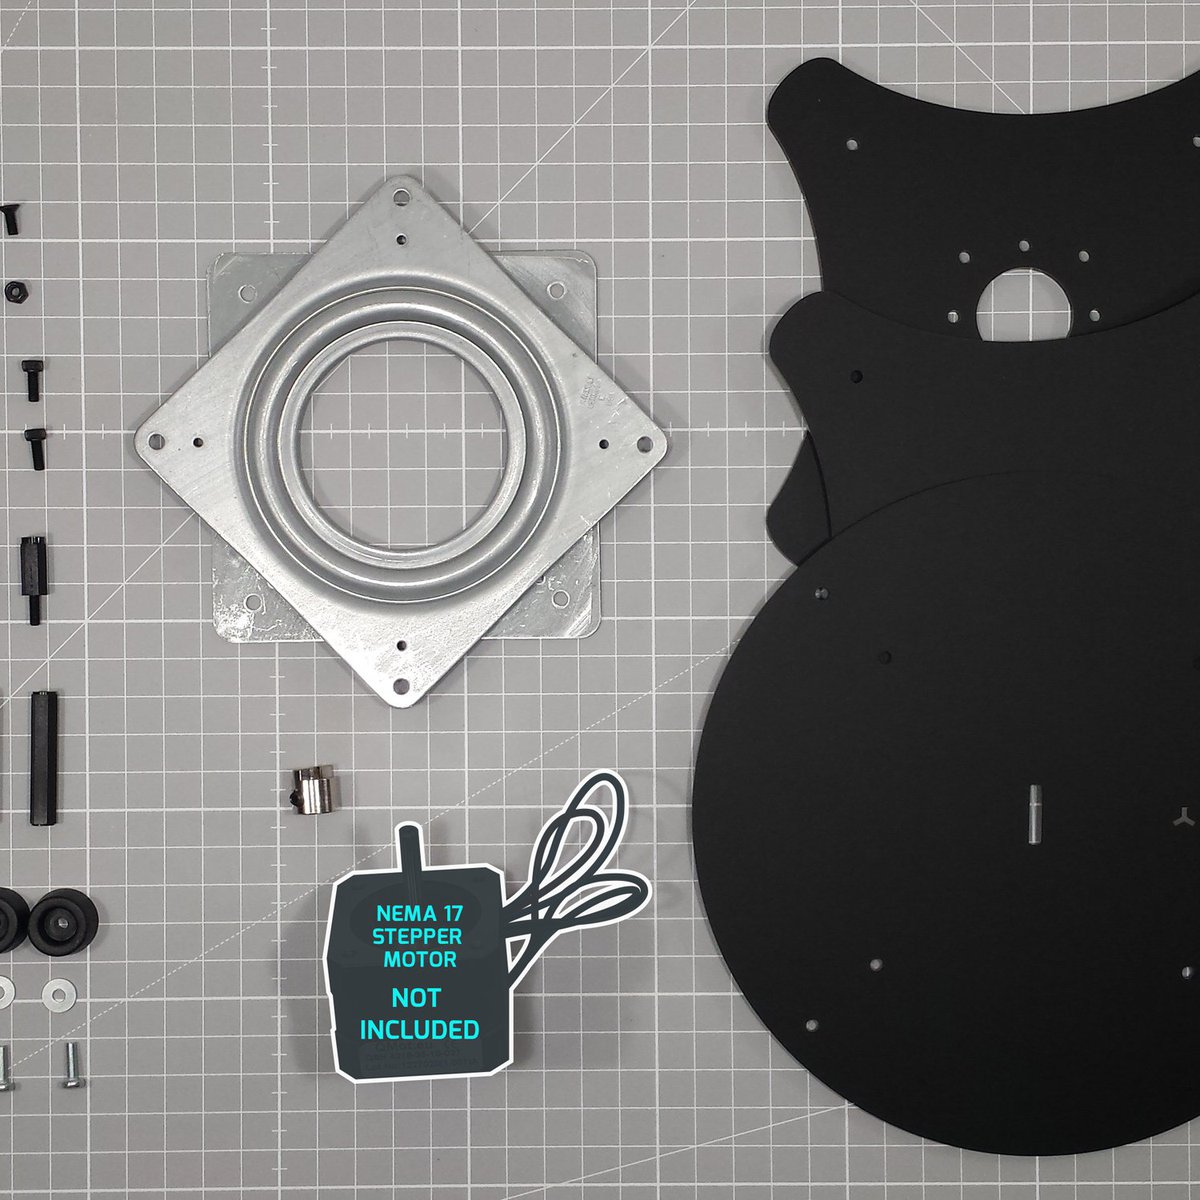 Turntable for Stepper Motor (Kit) from FluxGarage on Tindie